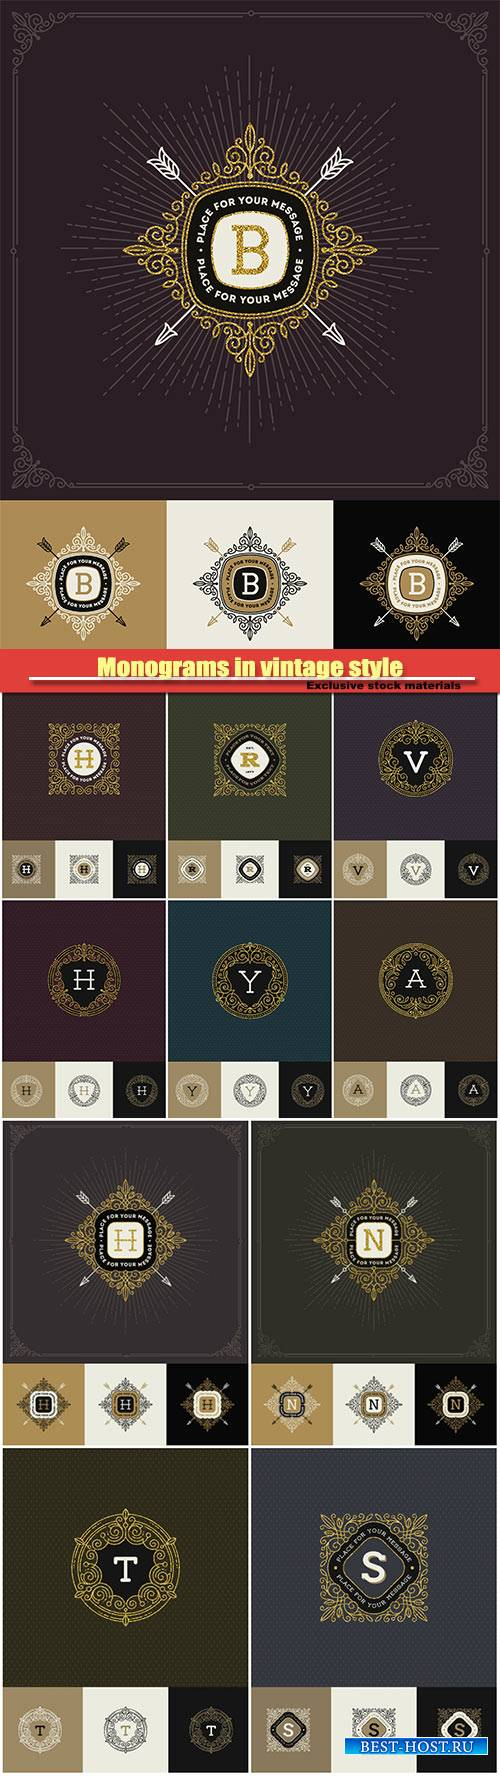 Monograms in vintage style, vector illustration